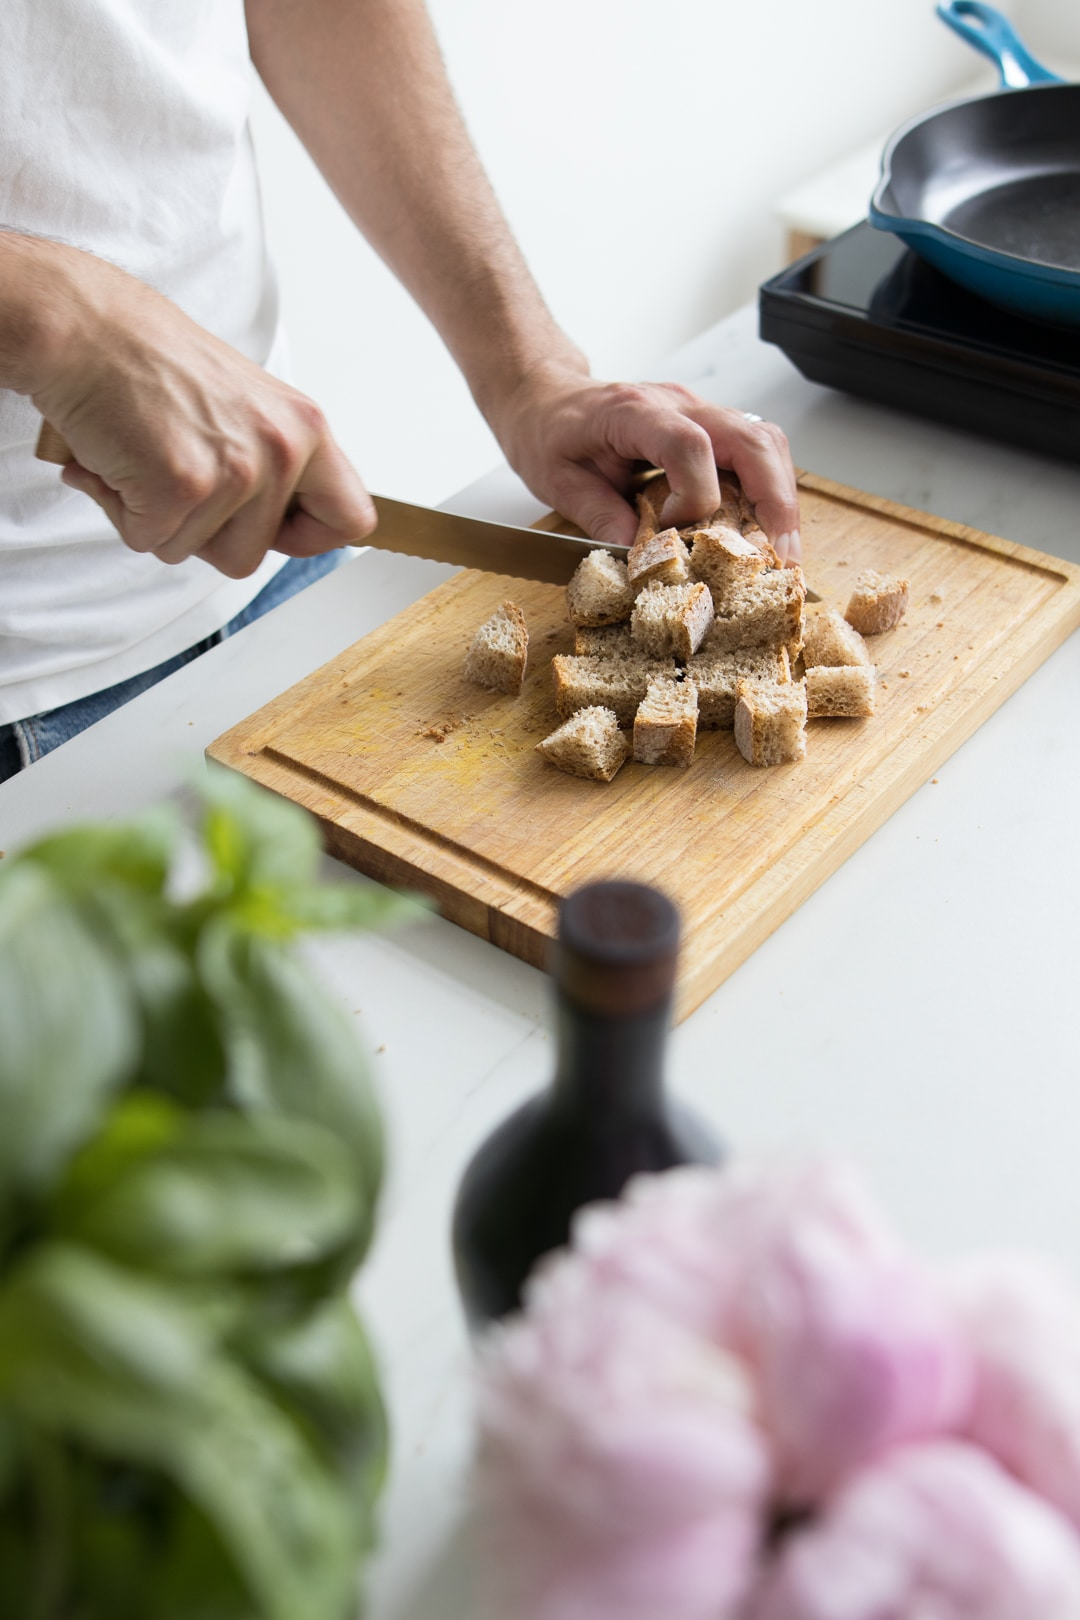 Male cutting bread into cubes on wooden cutting board surrounded by bottle, flowers, and basil